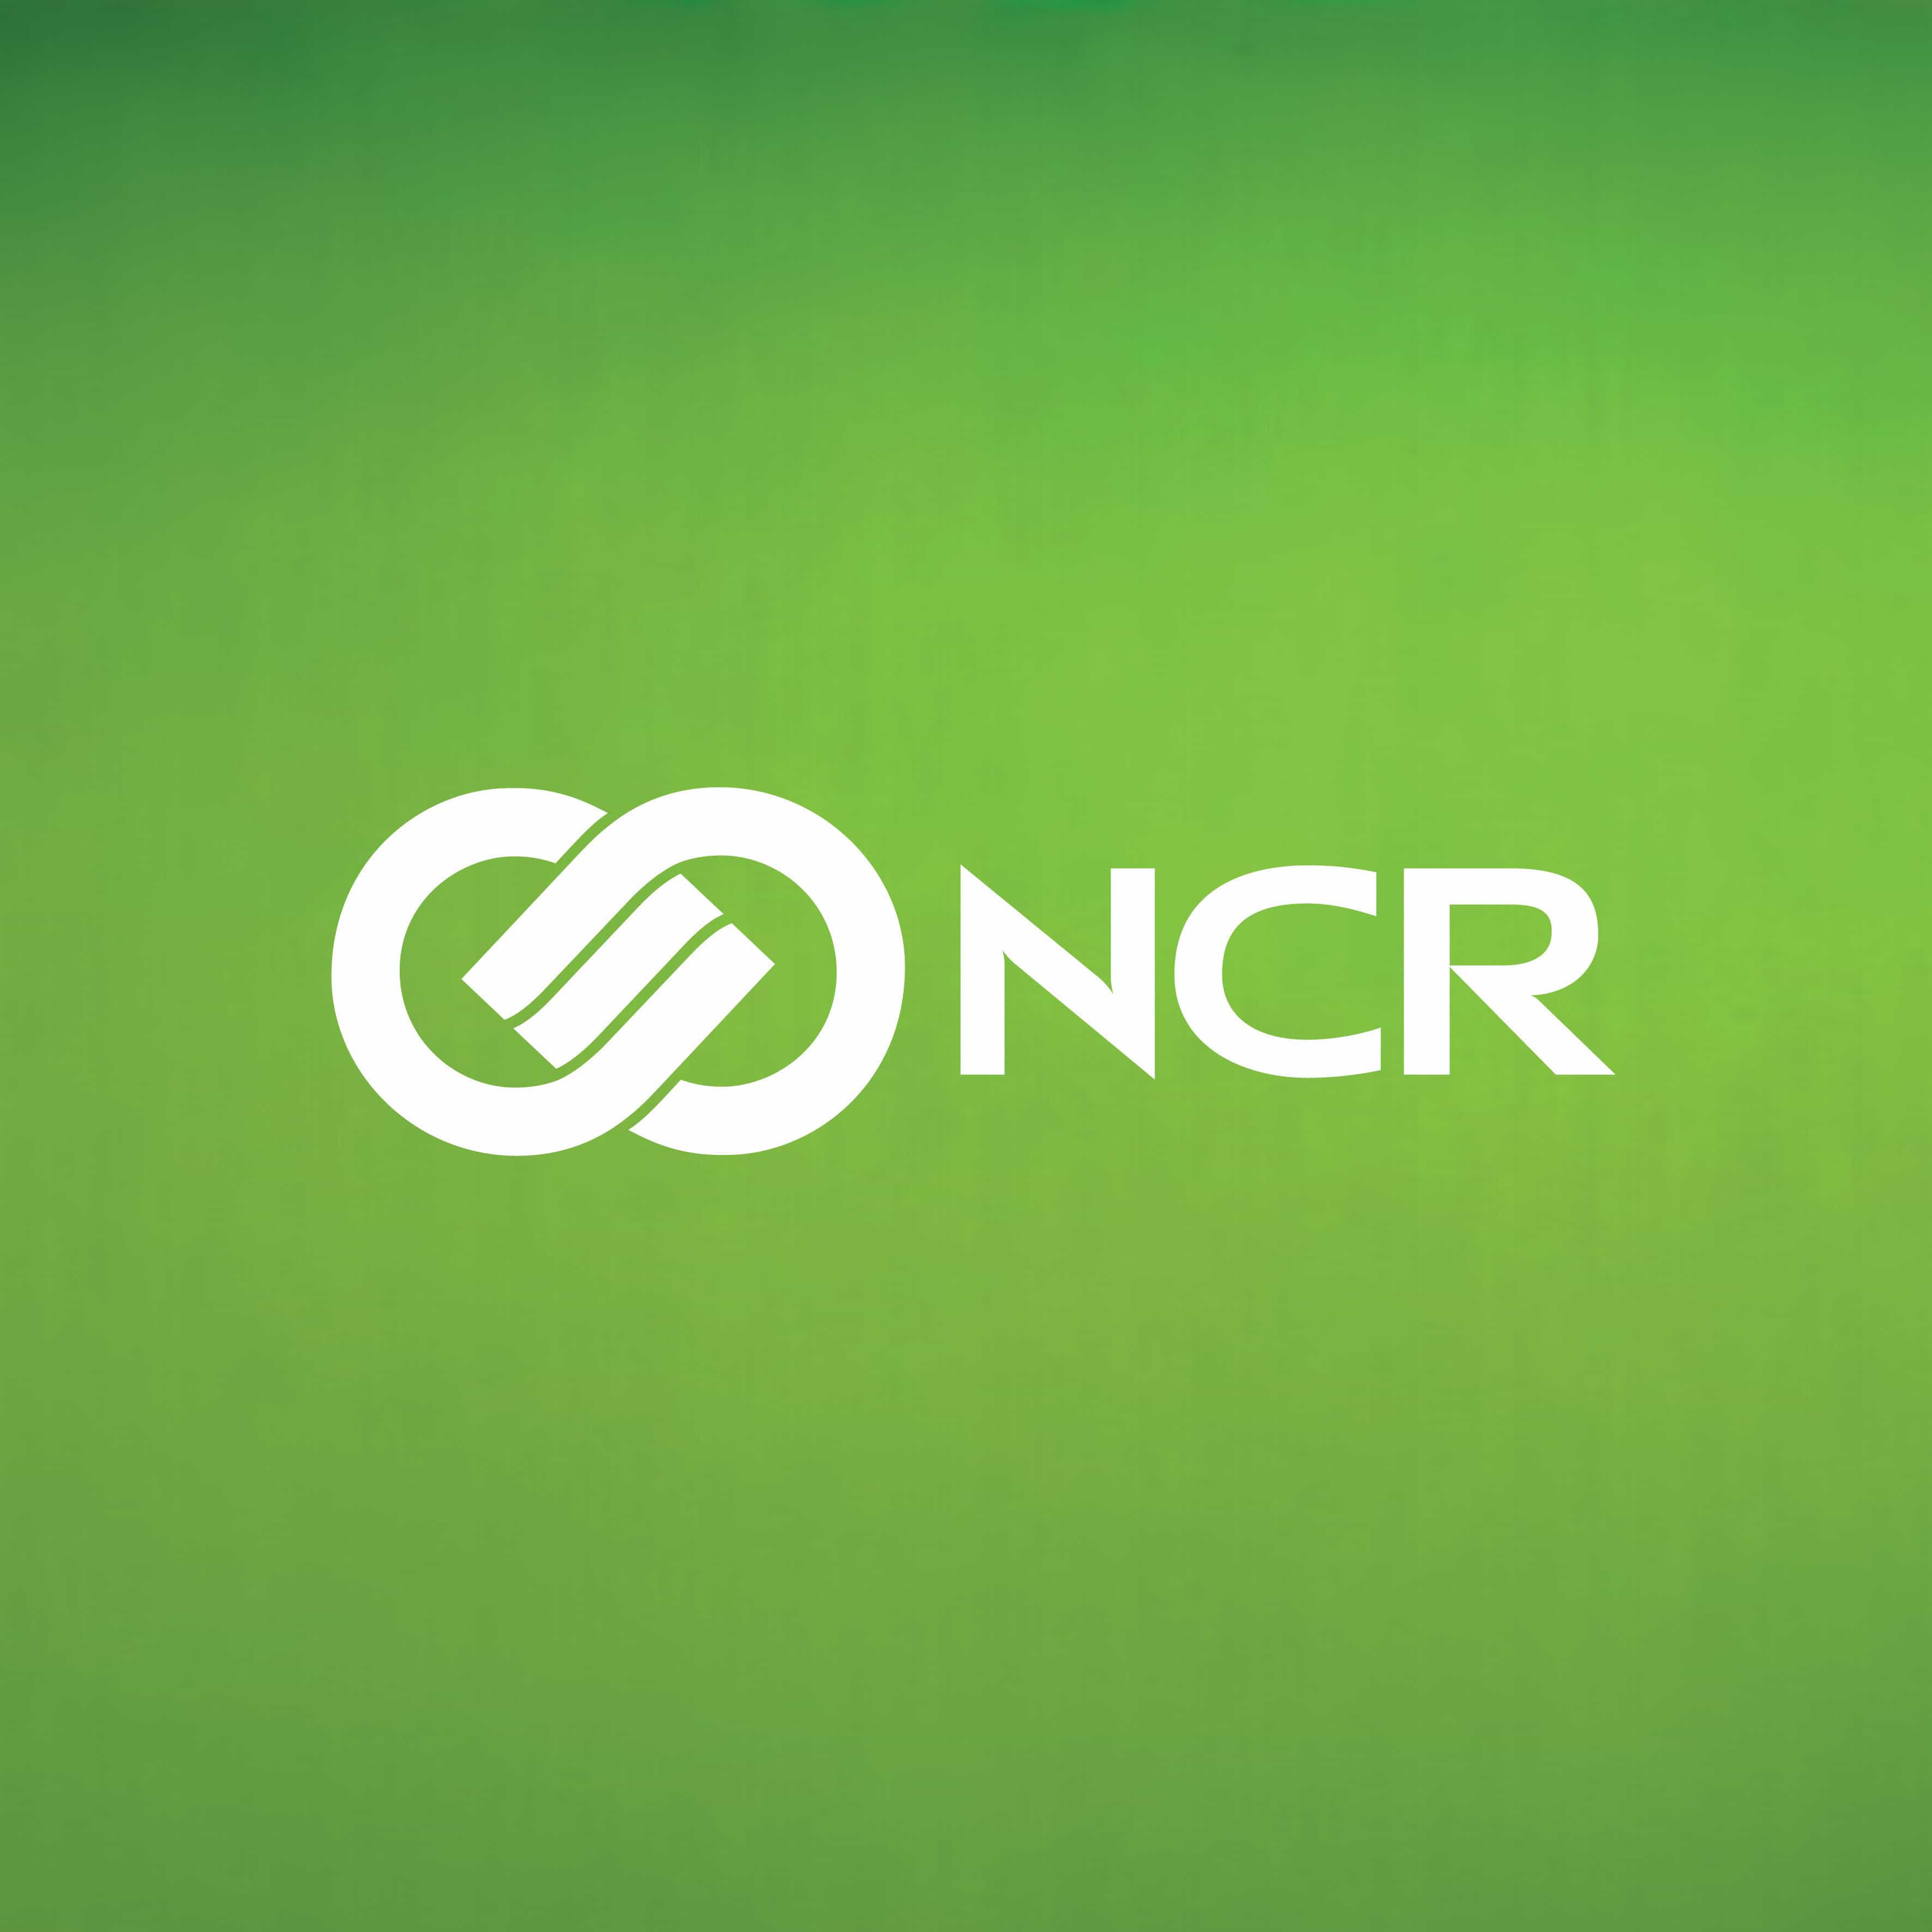 NCR-BB-Preferred.jpg